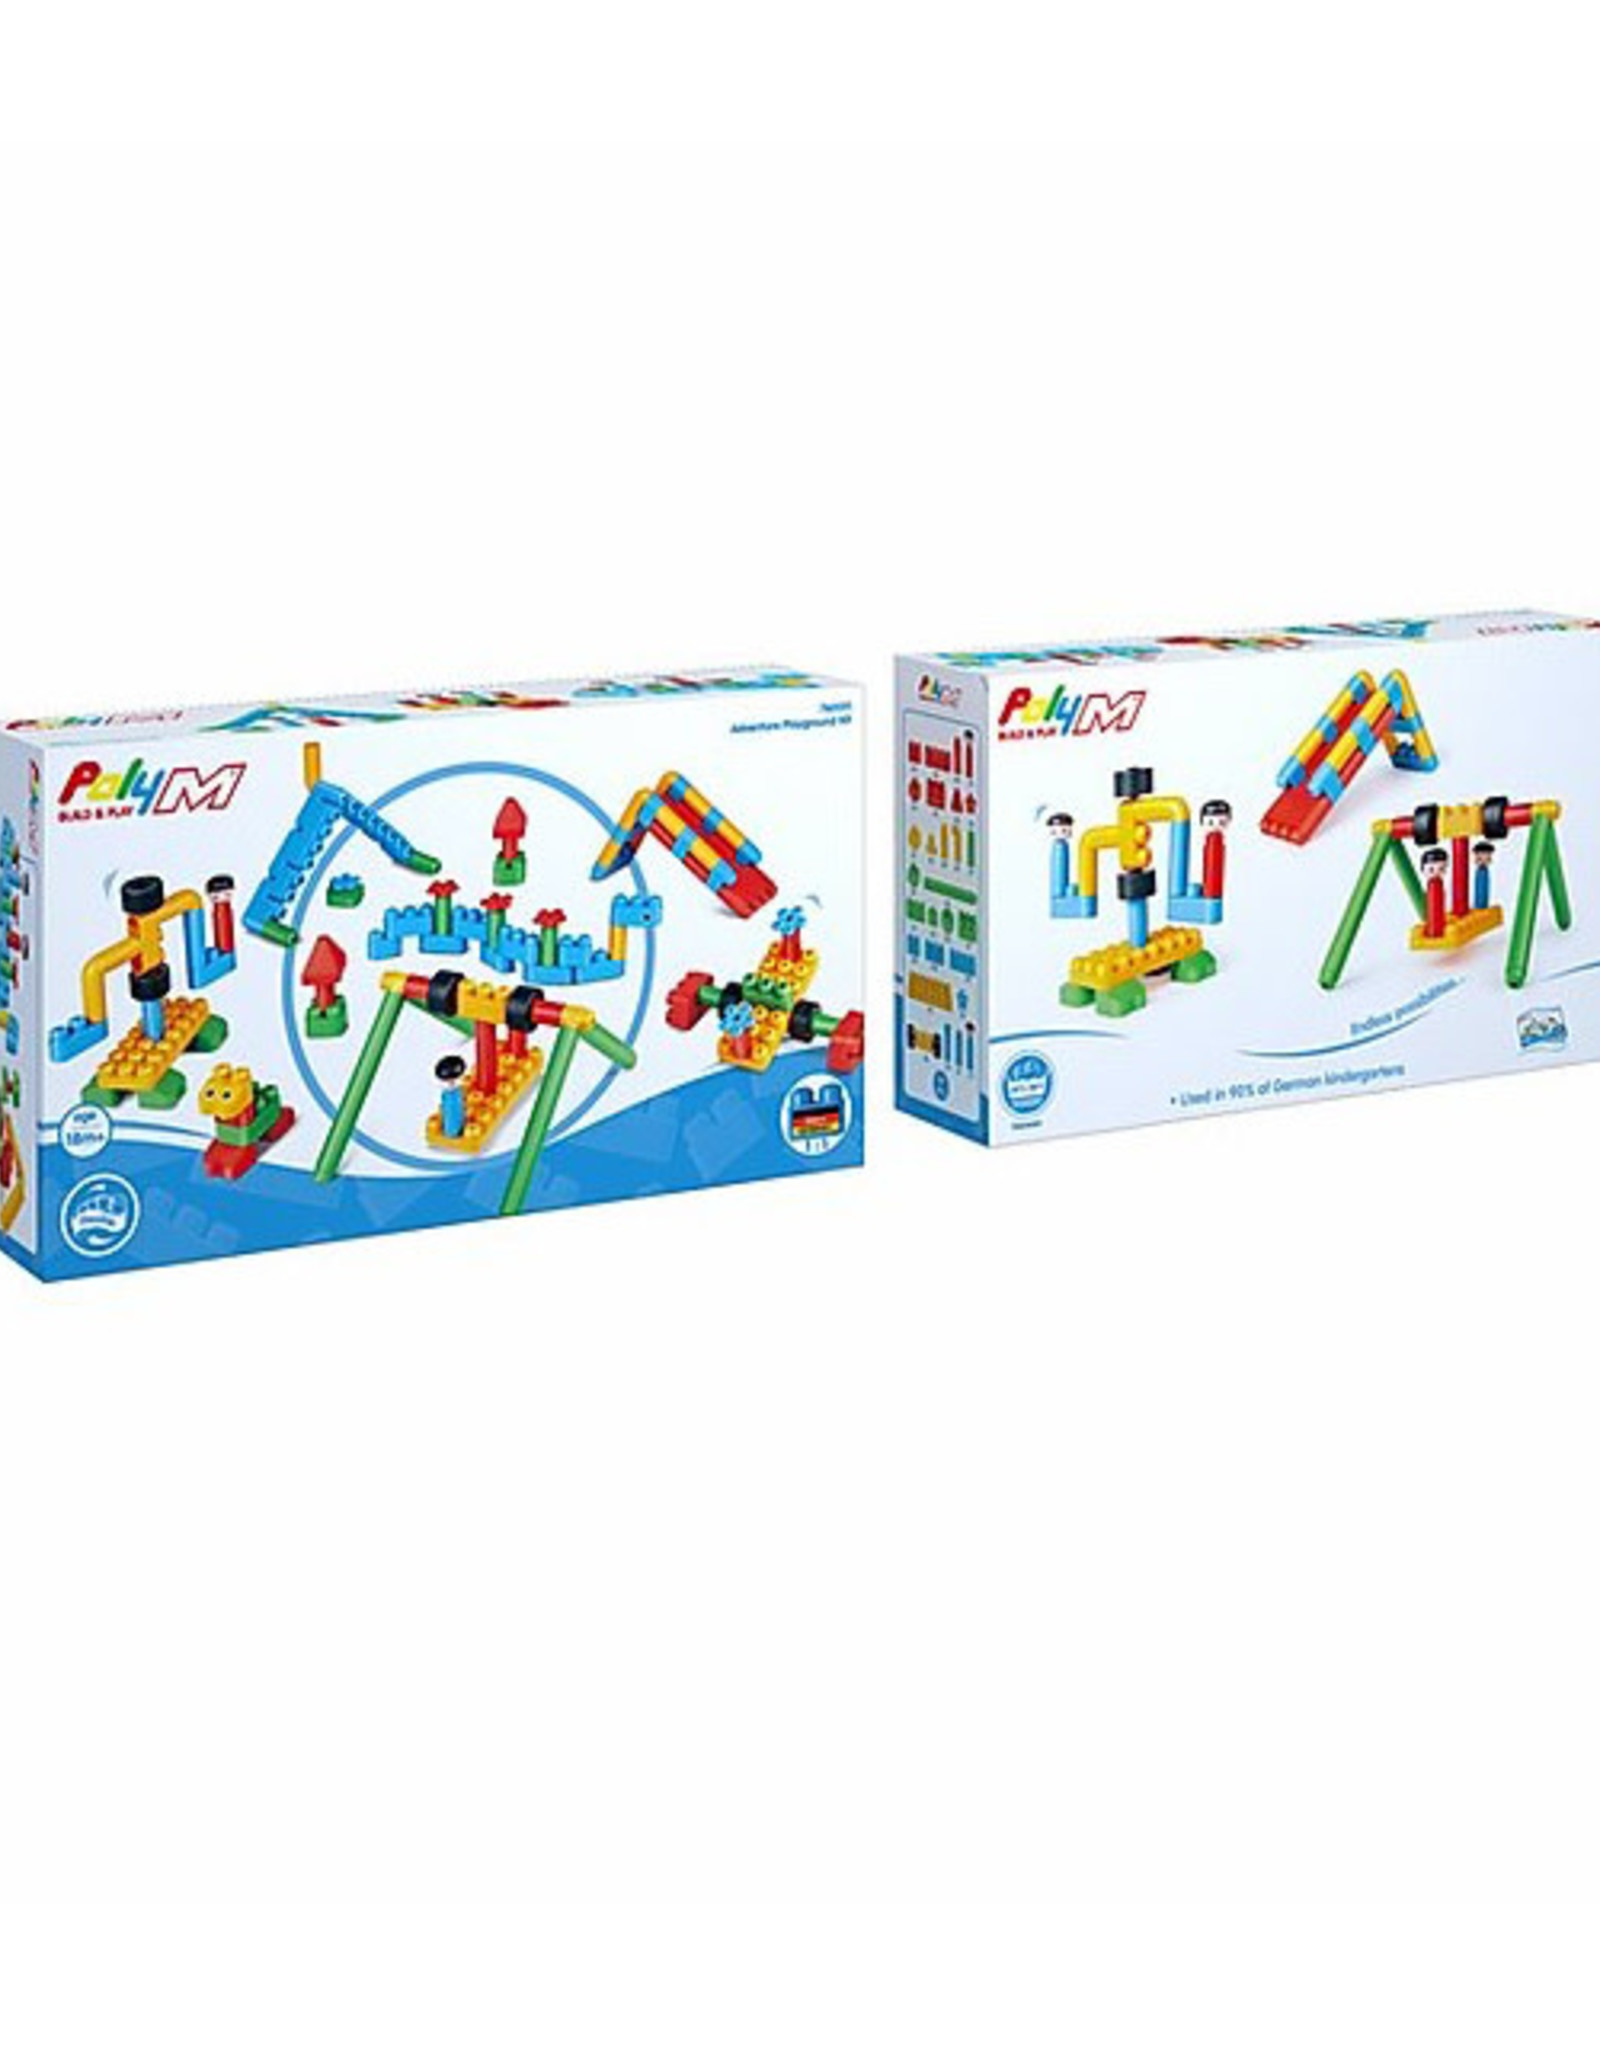 Poly M Poly M Adventure Playground Kit